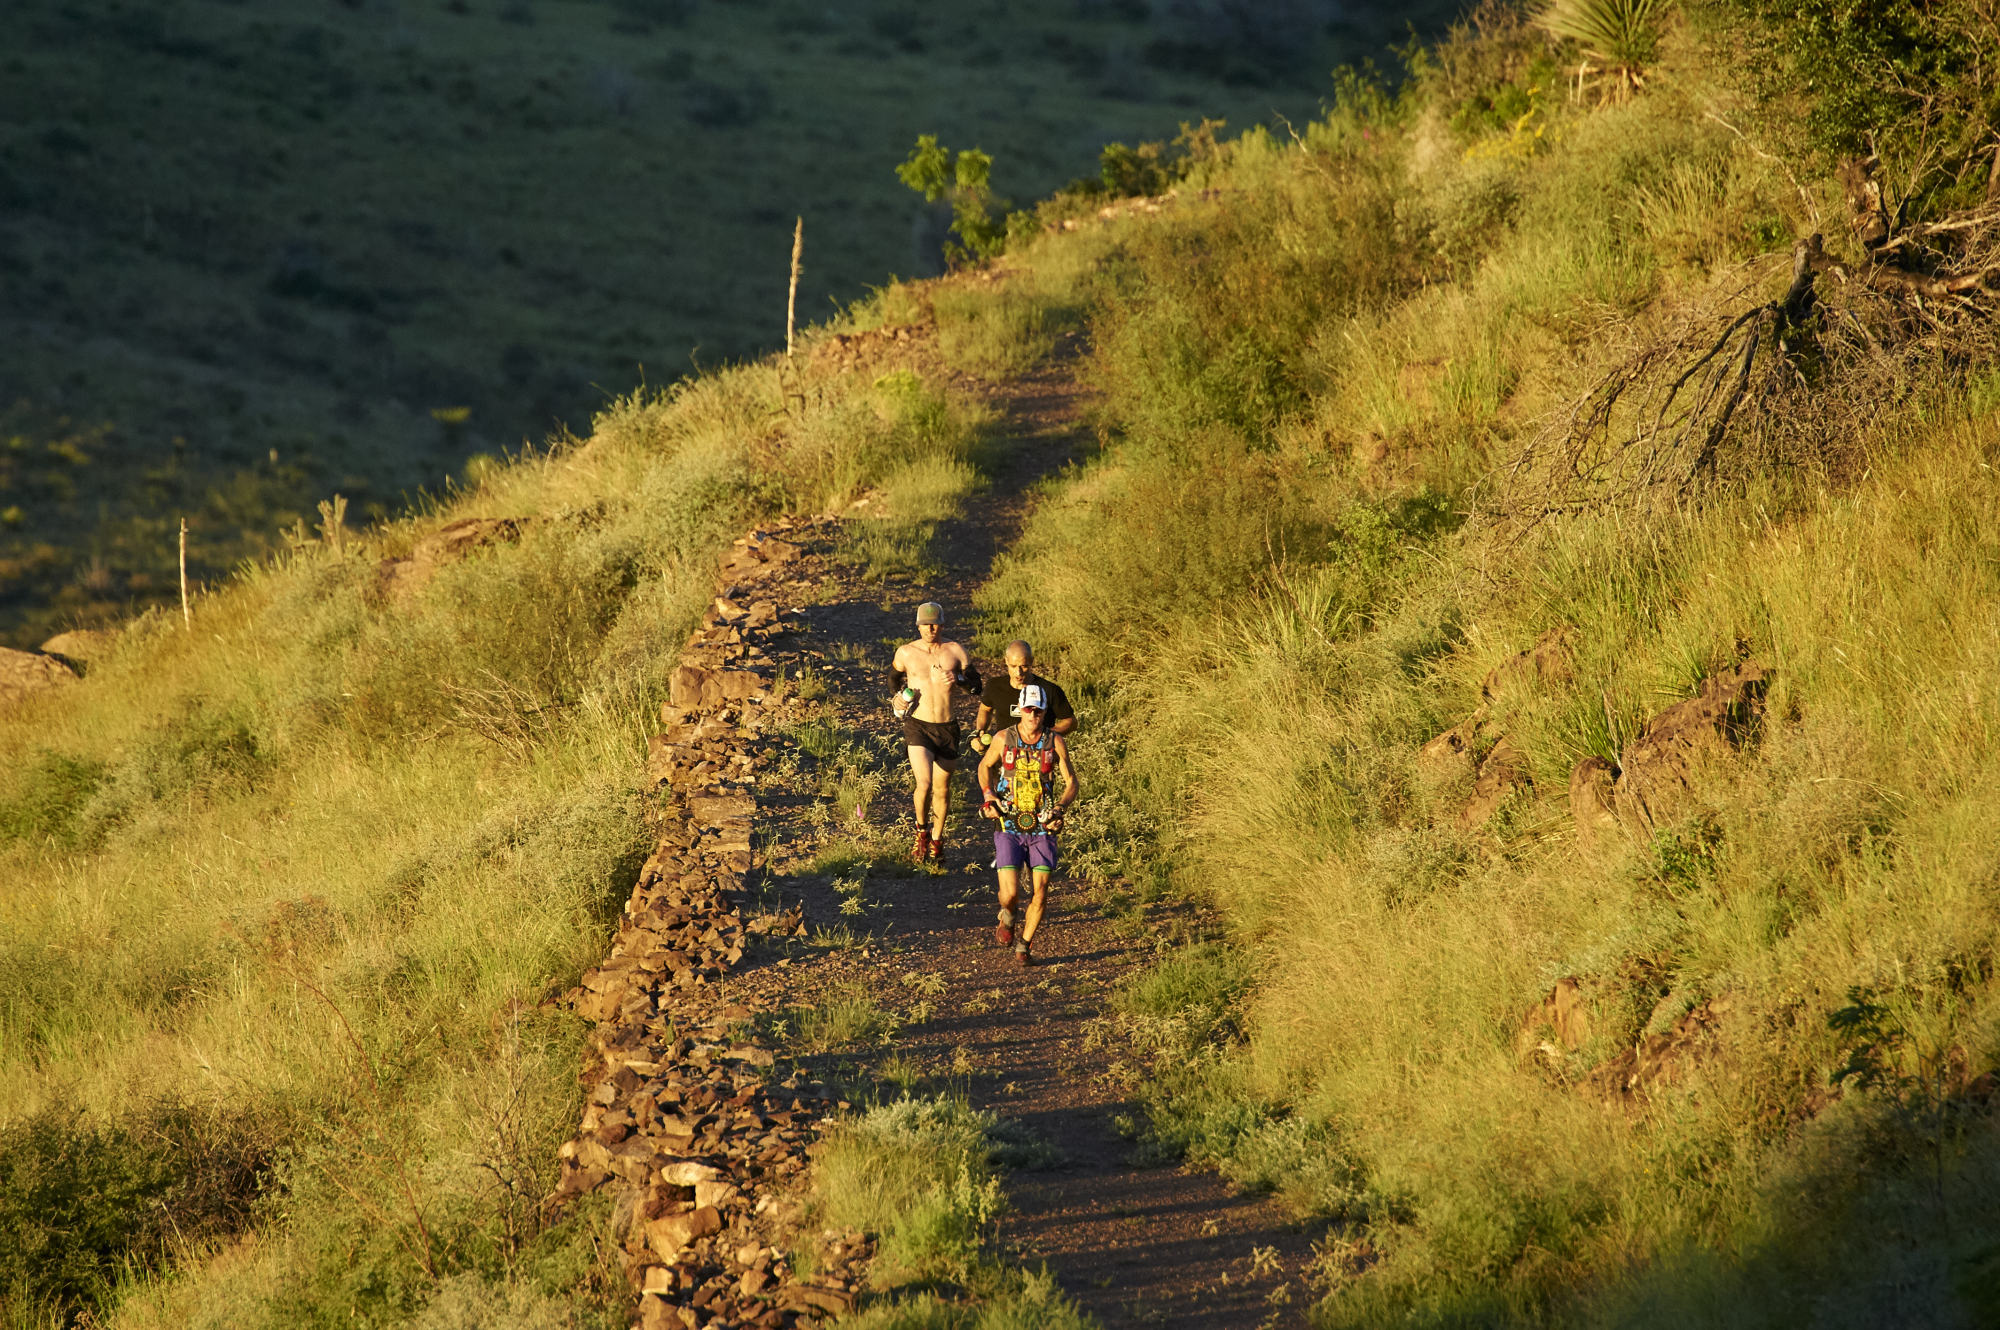 The first runners in the Spectrum Trail Race make their way up onto the ridge.